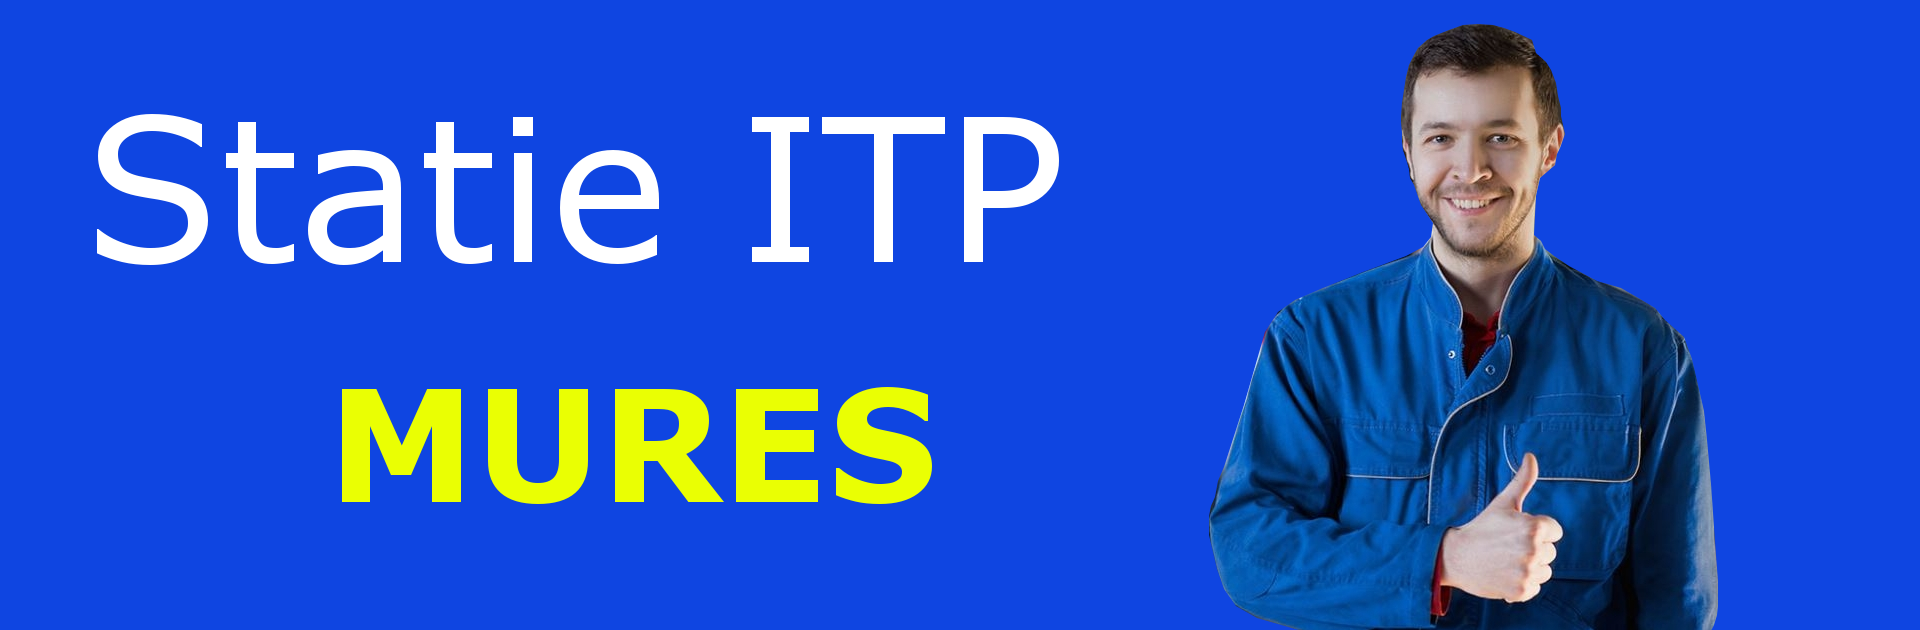 Banner ITP MURES